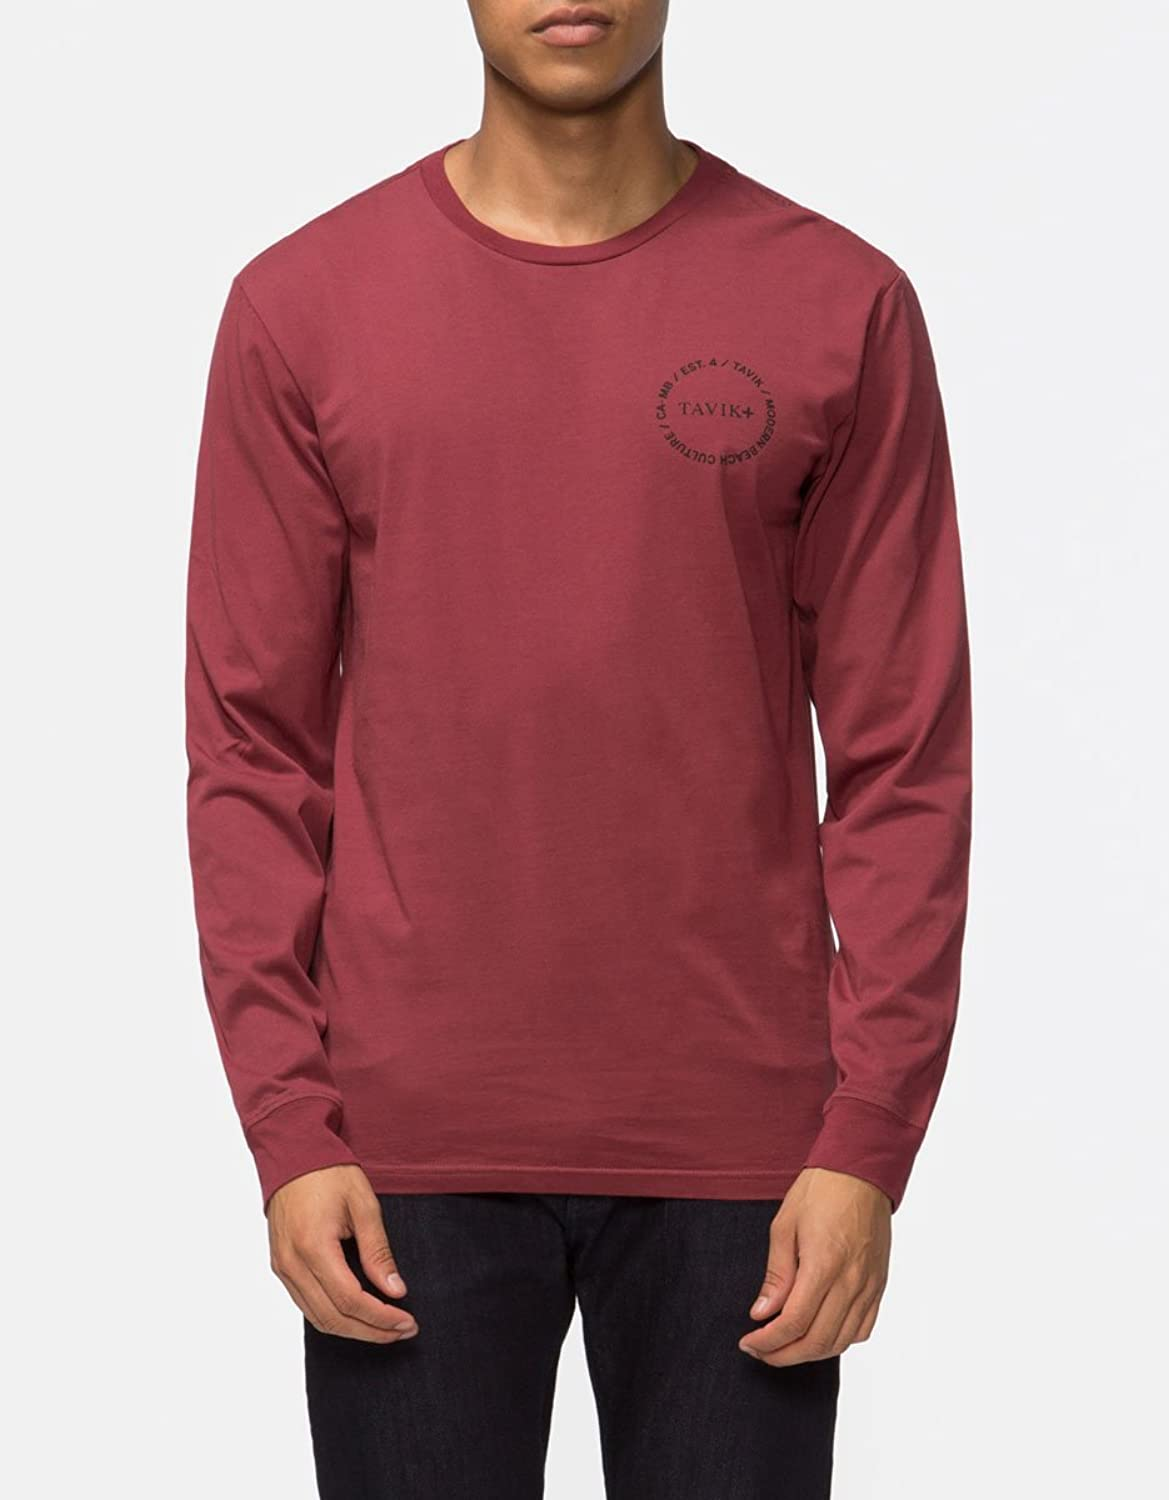 Tavik Men's Crew Long Sleeve Tee